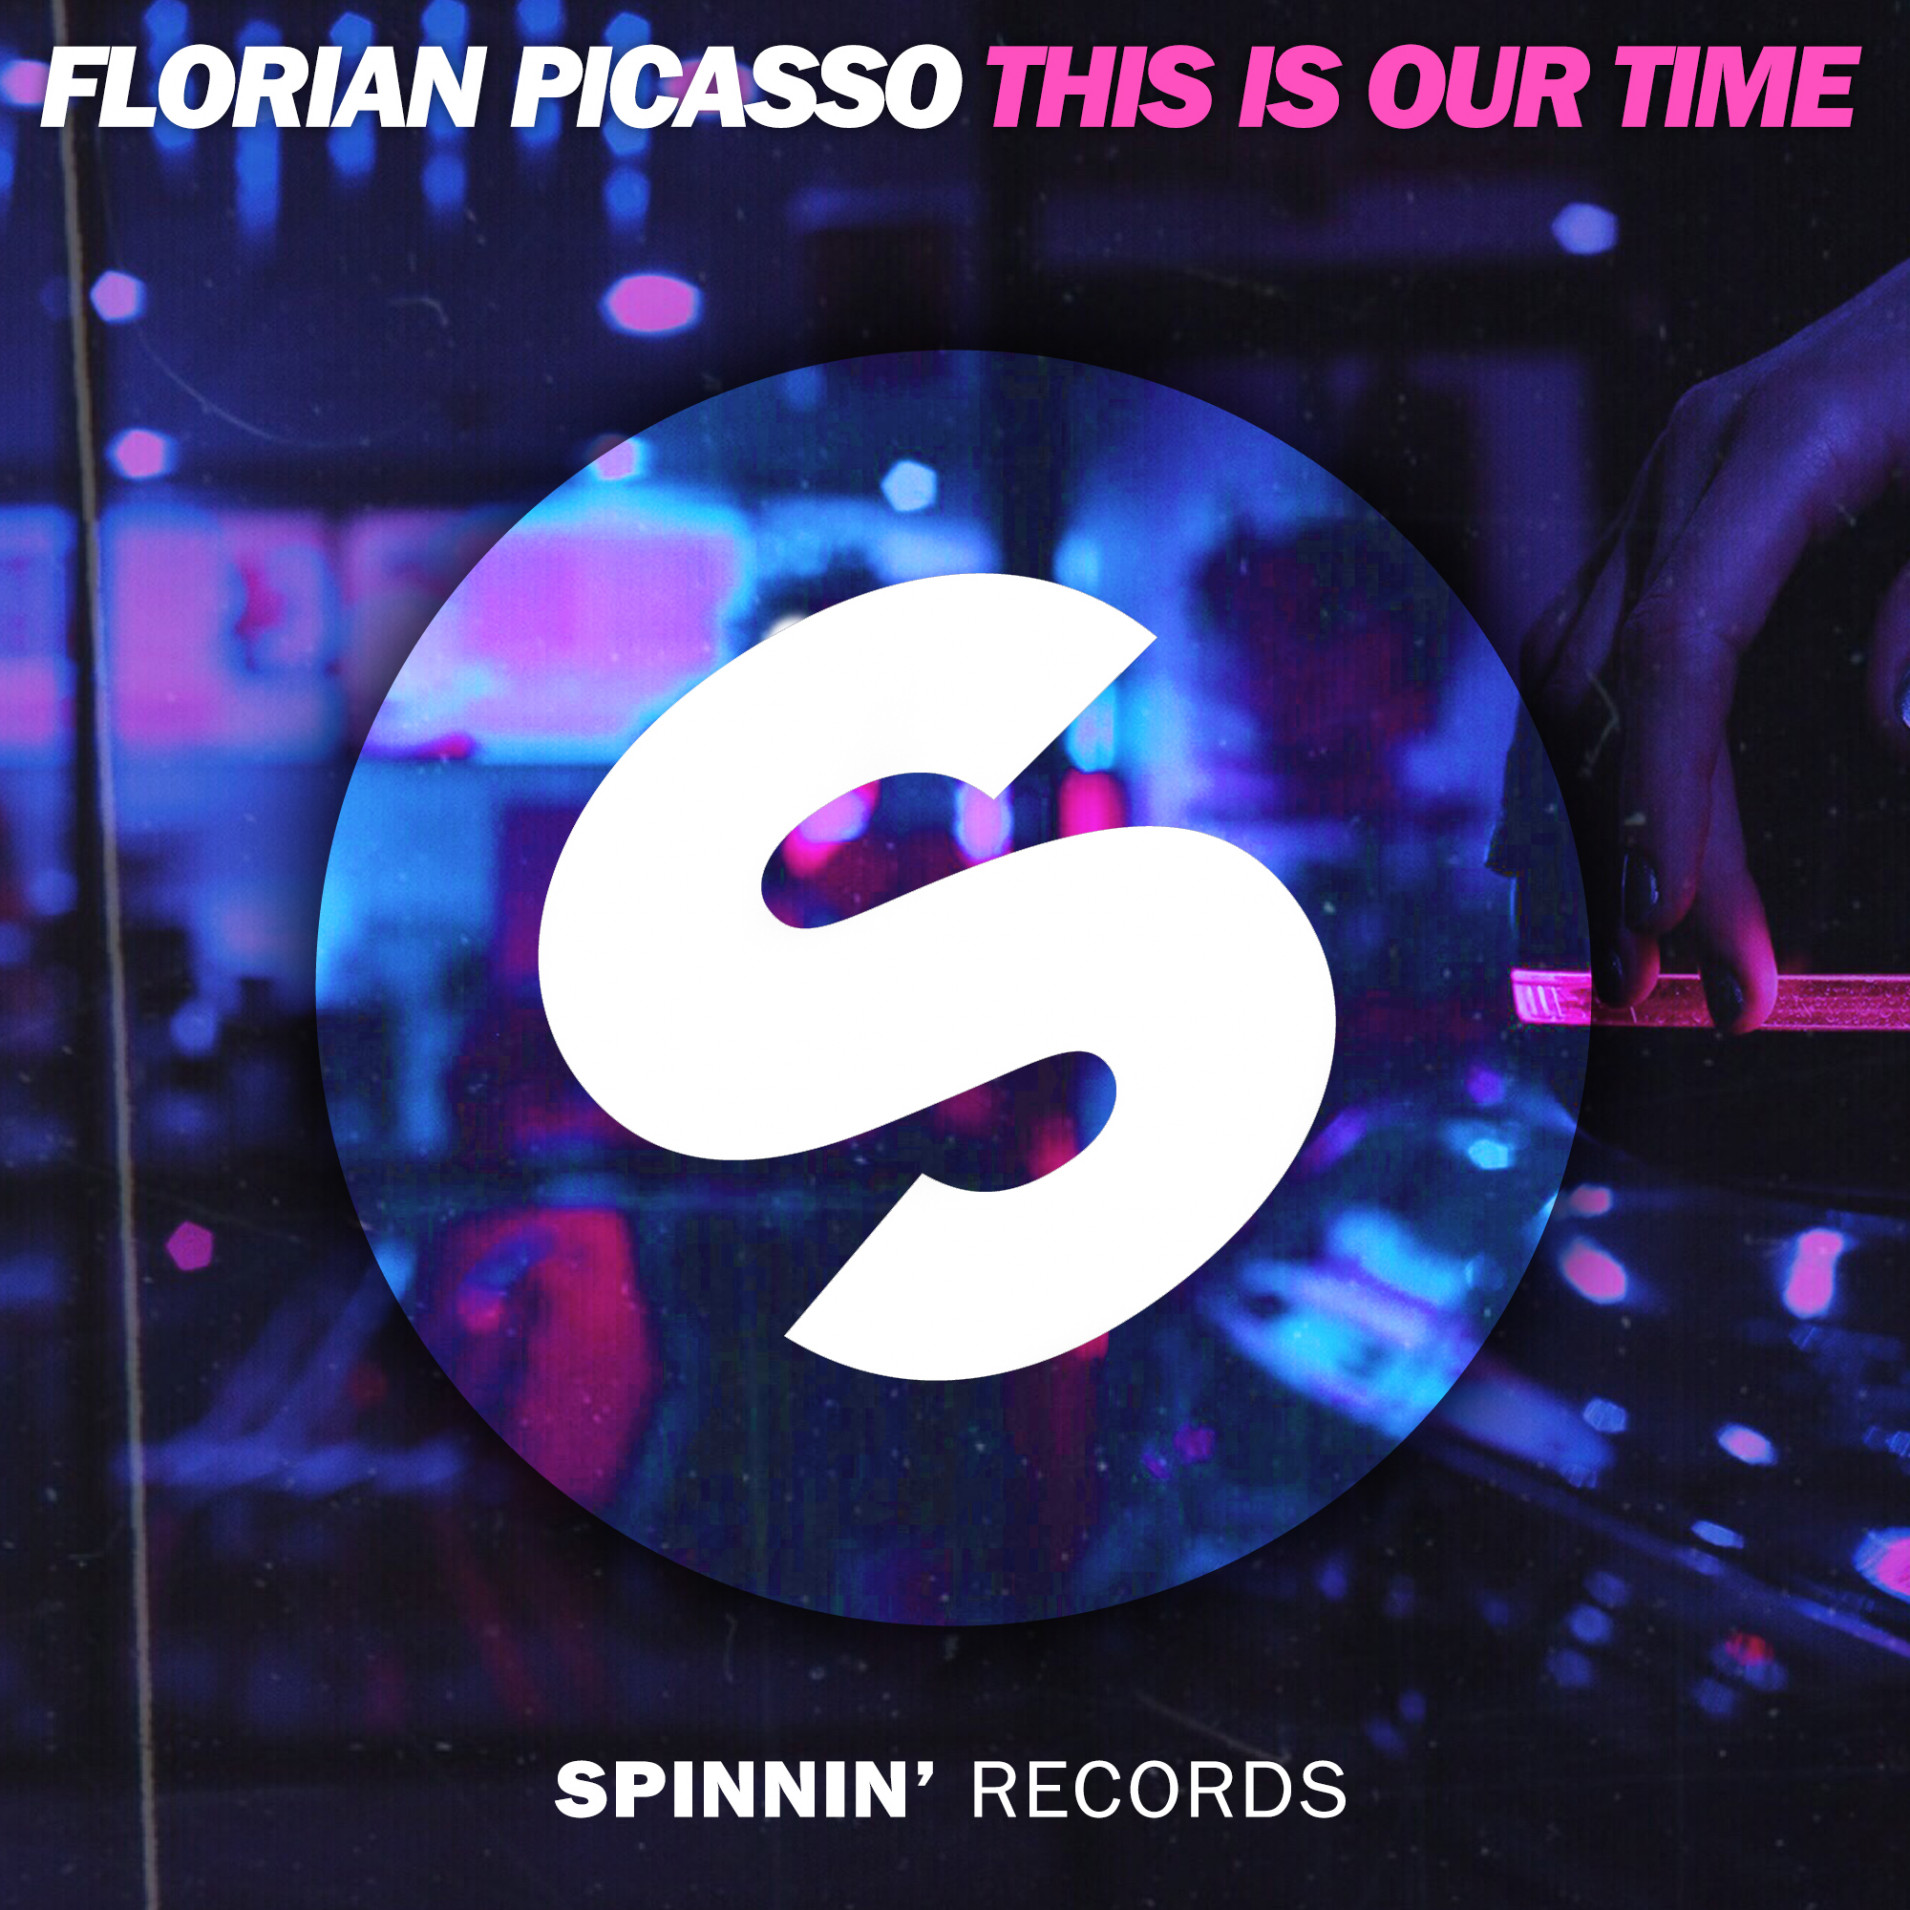 This Is Our Time Florian Picasso Spinnin Records